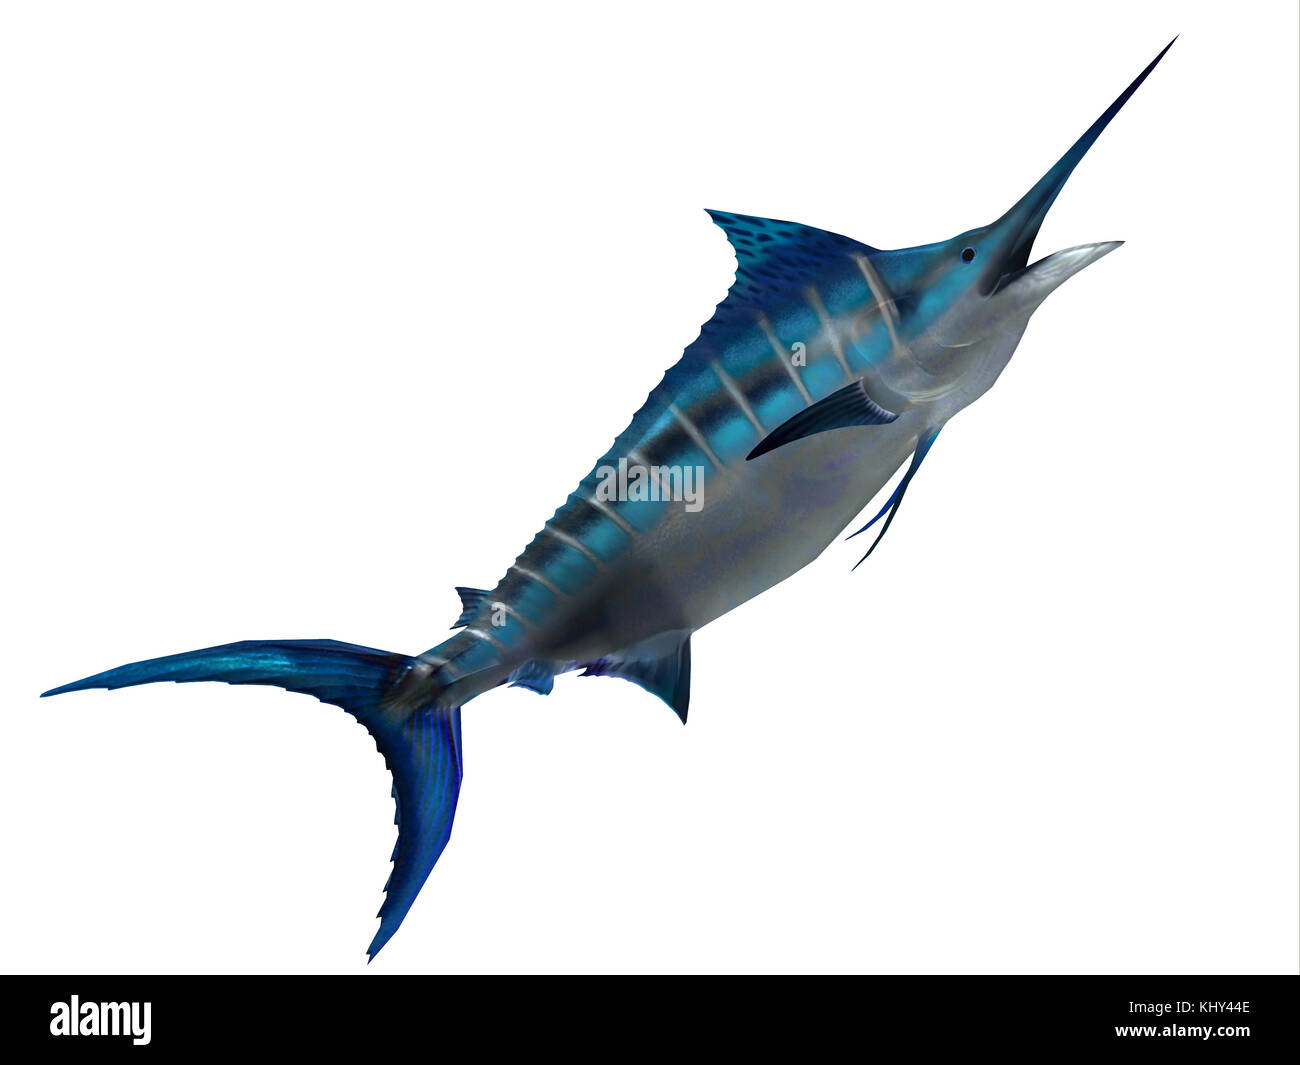 Predator Marlin Fish - The Blue Marlin is a favorite fish of sport fishermen and one of the predators of the Atlantic - Stock Image